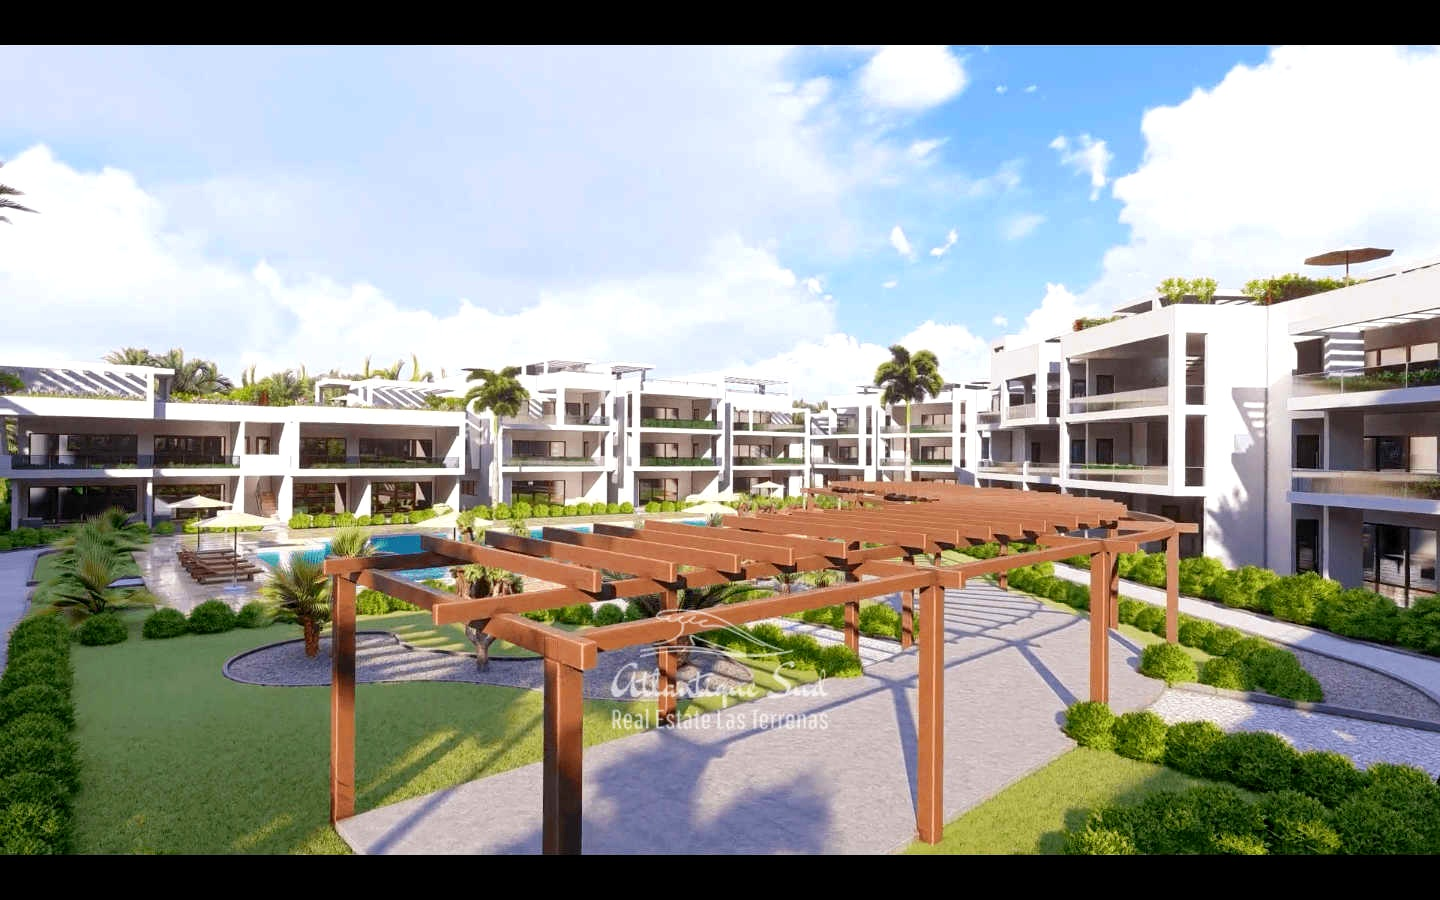 Condos for sale in Las Terrenas Dominican Republic 6.jpg